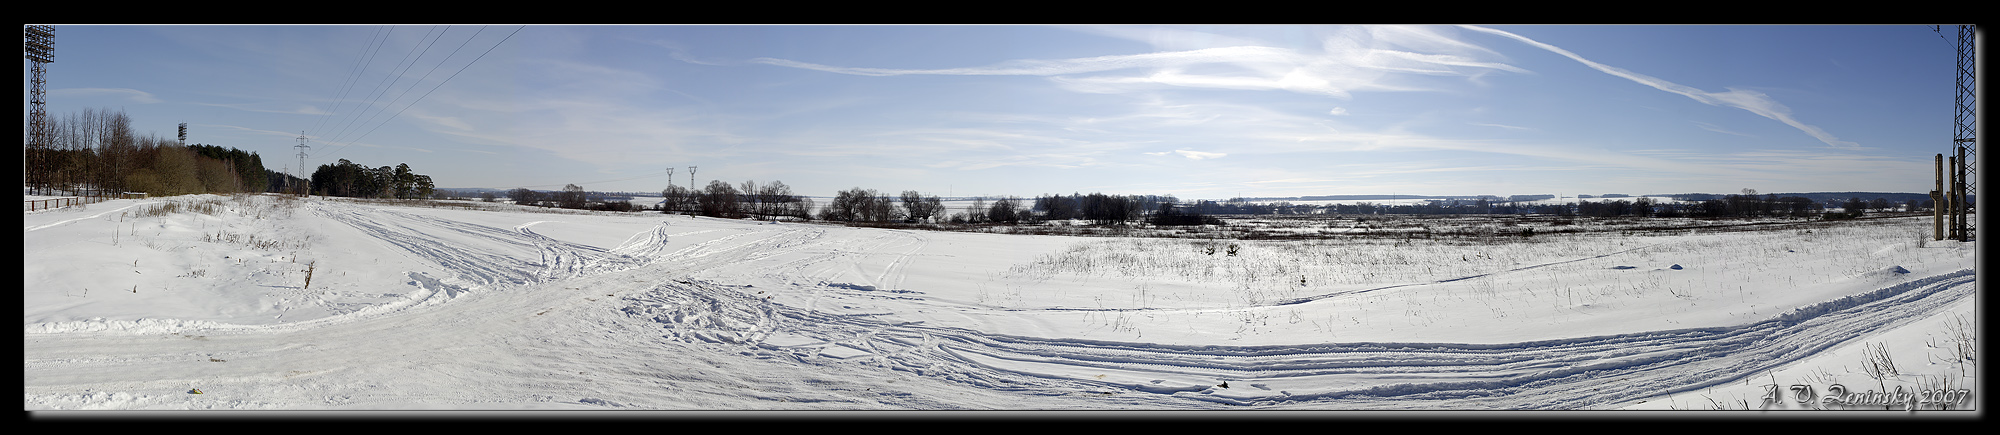 "photo ""Frost and sun, a wonderful day;)"" tags: landscape, panoramic, nature, Europe, clouds, field, forest, road, winter"